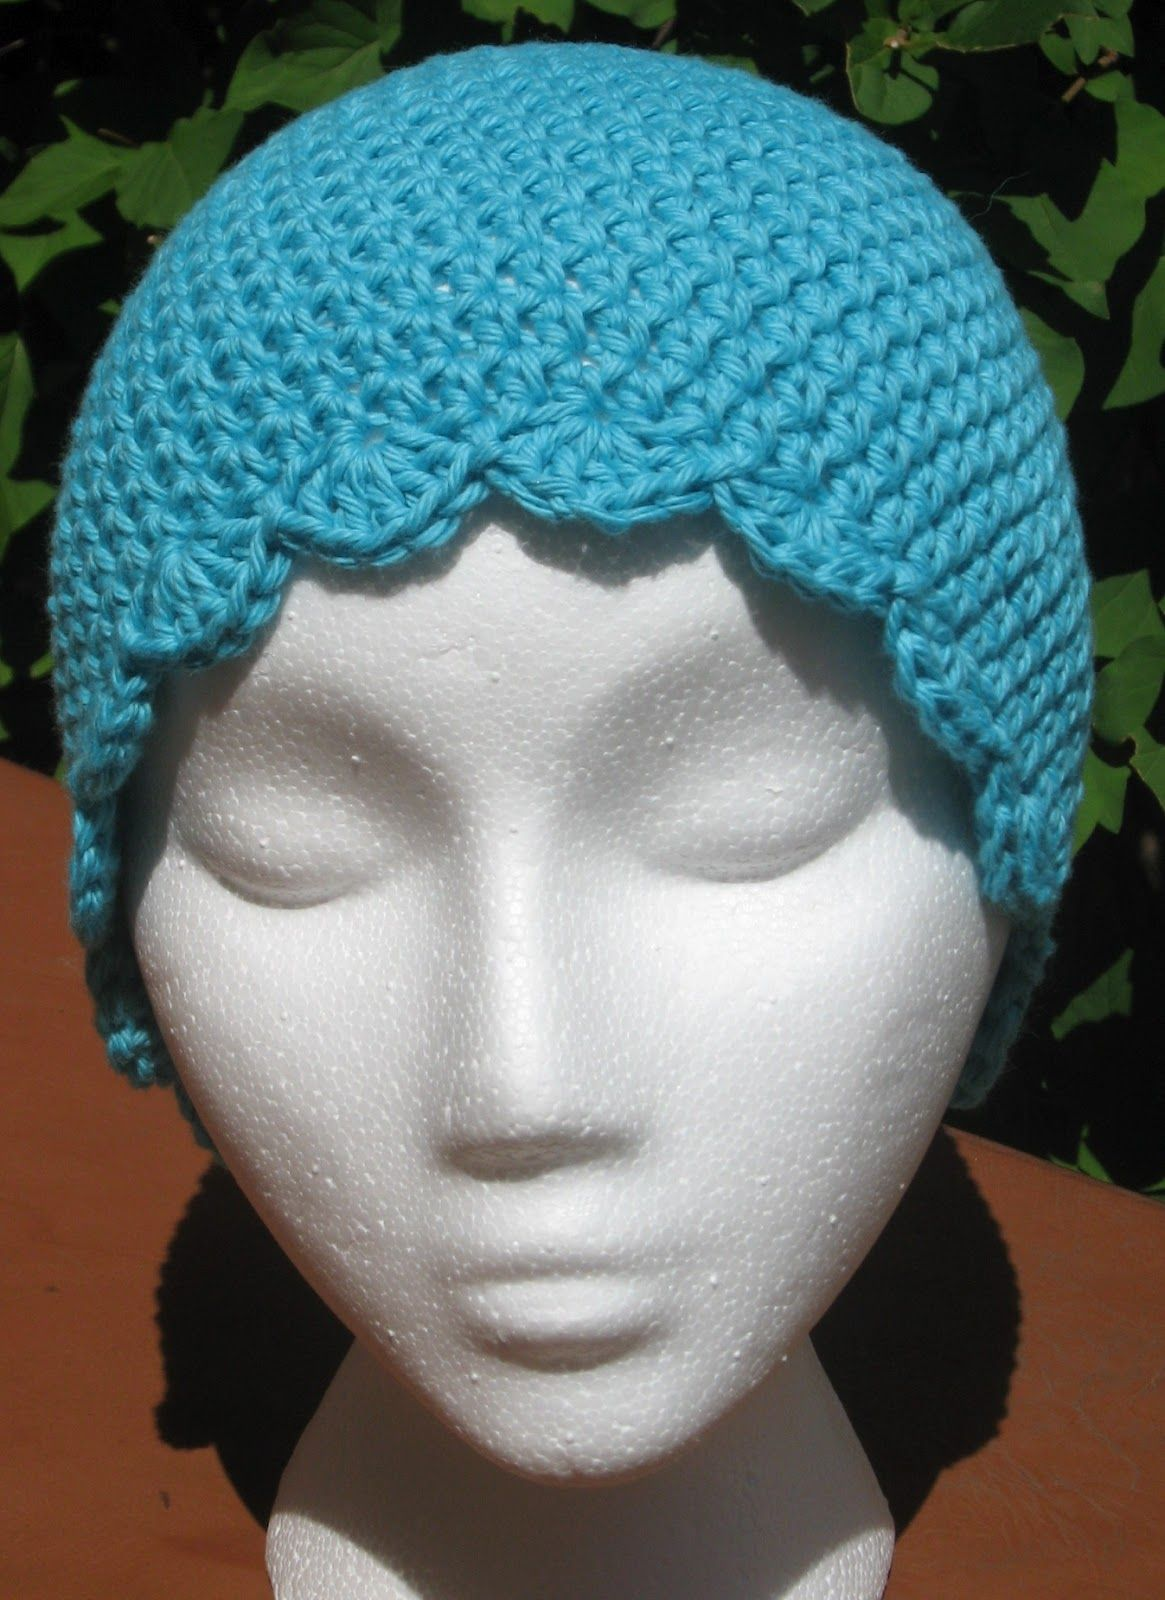 Crochet Projects: Crochet Chemo Sleep Cap | Chemo Beanies ...